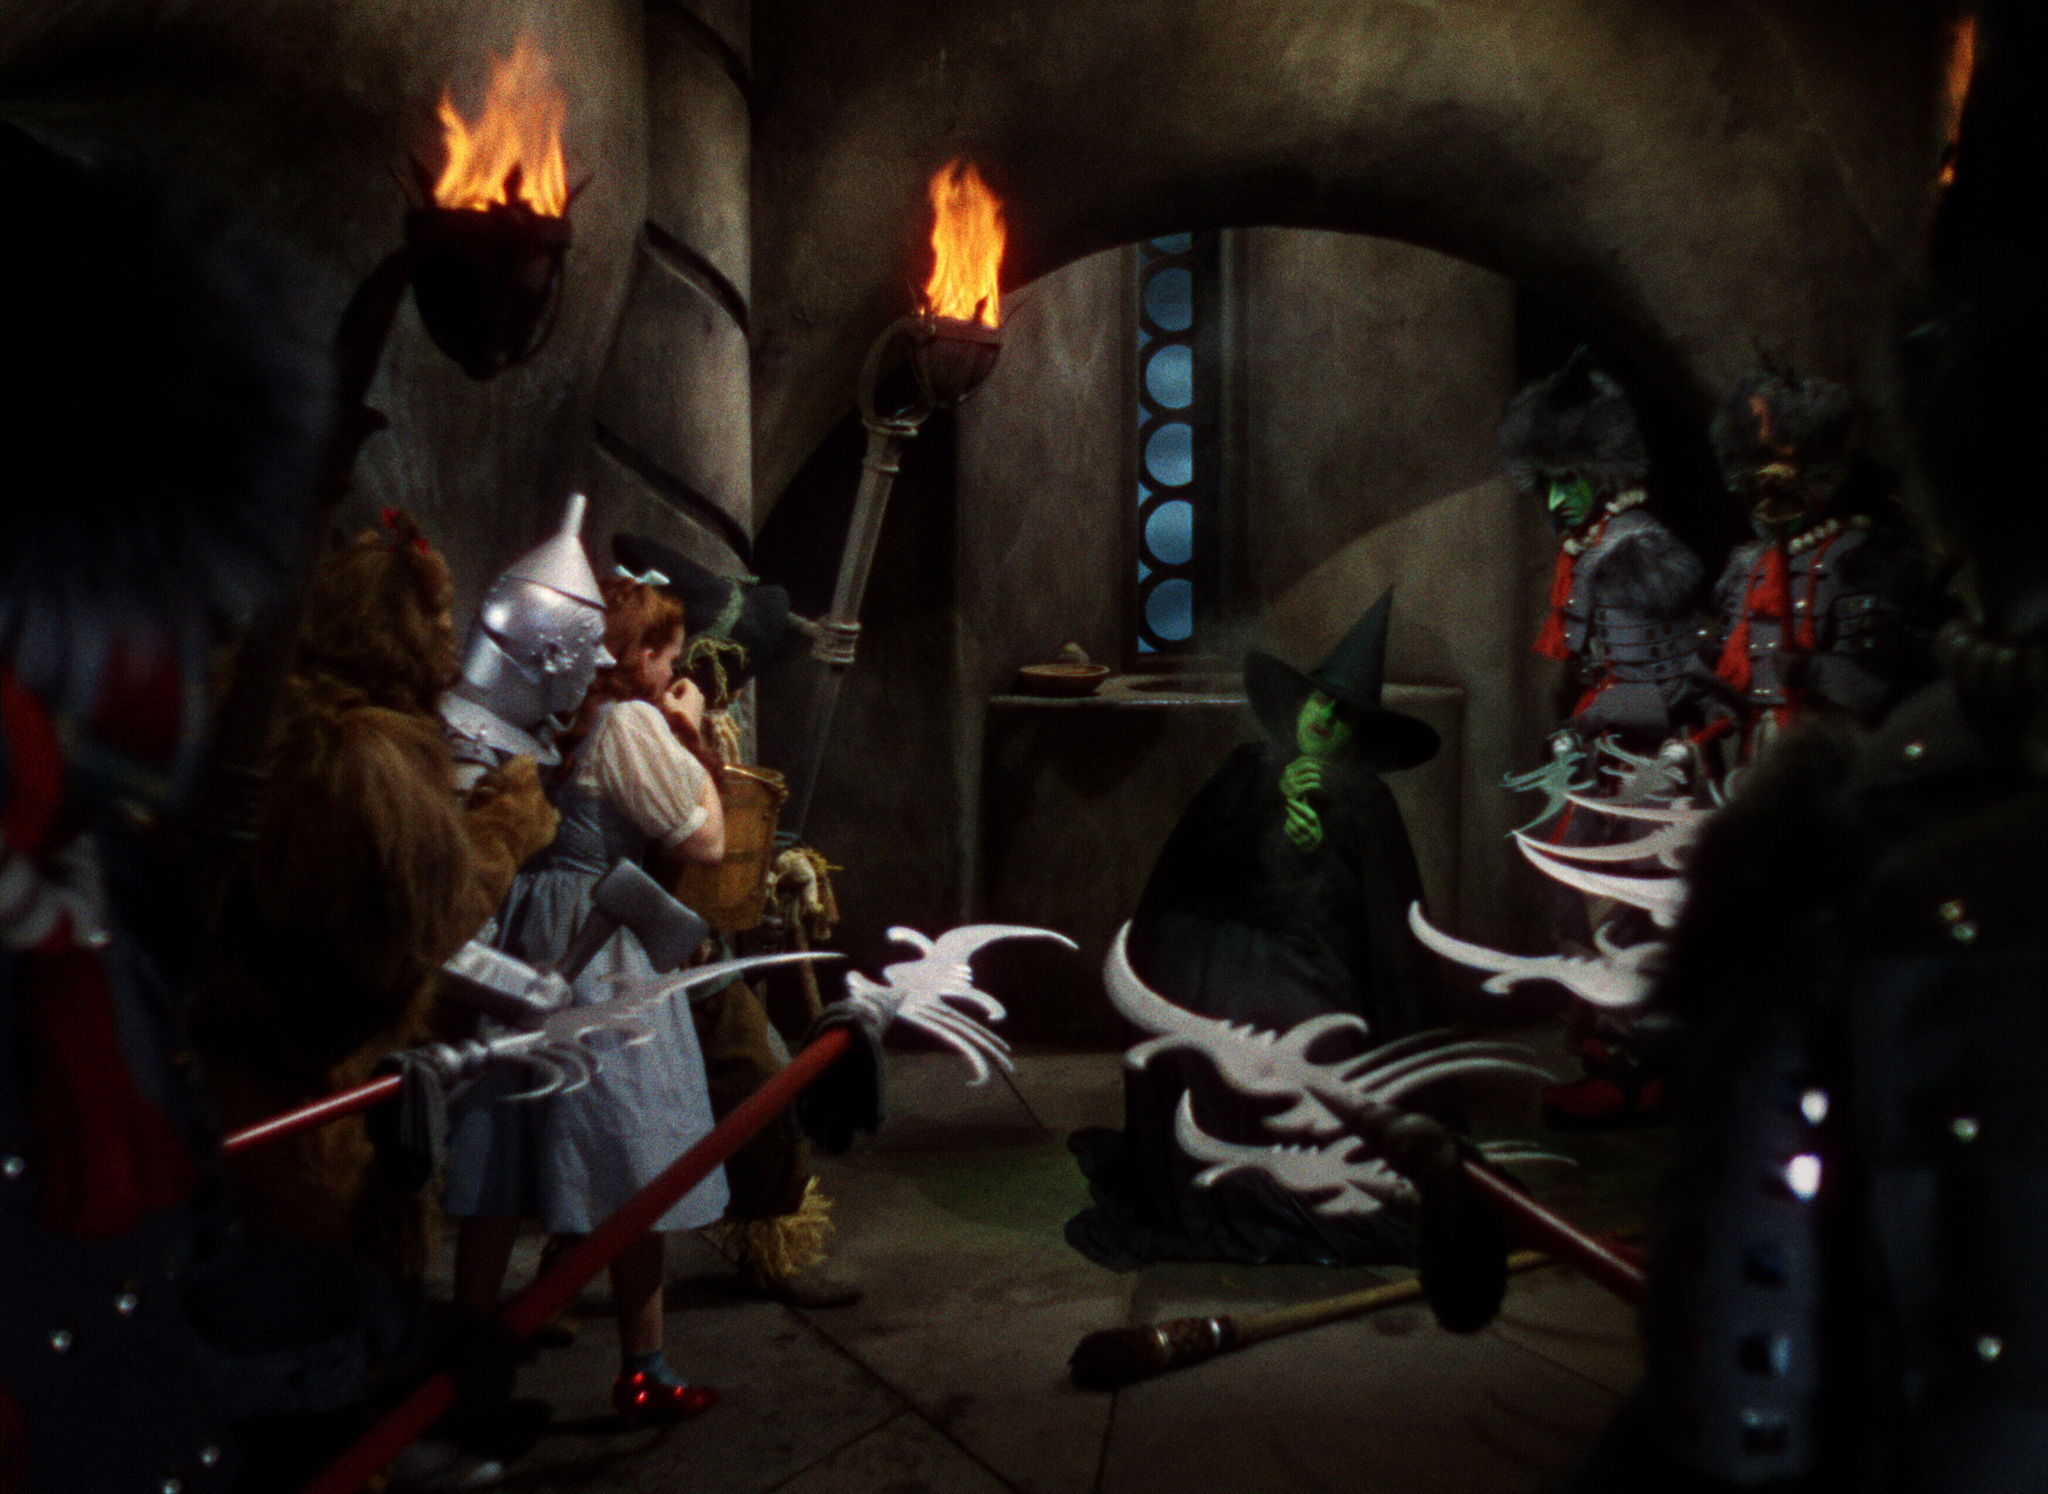 Judy Garland, Ray Bolger, Margaret Hamilton, Jack Haley, and Bert Lahr in The Wizard of Oz (1939)